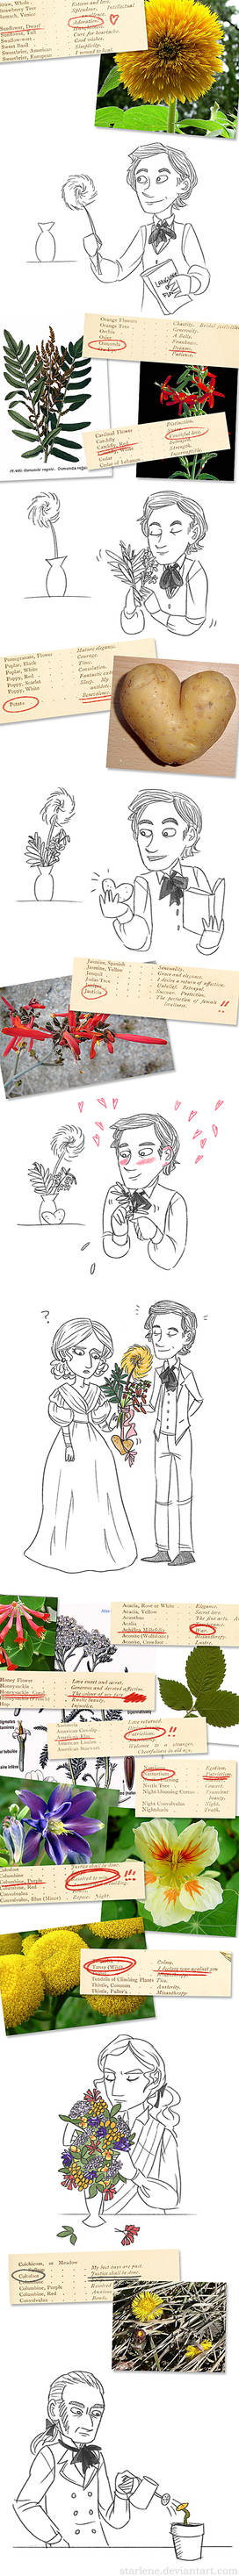 Les Miserables and the Language of Flowers